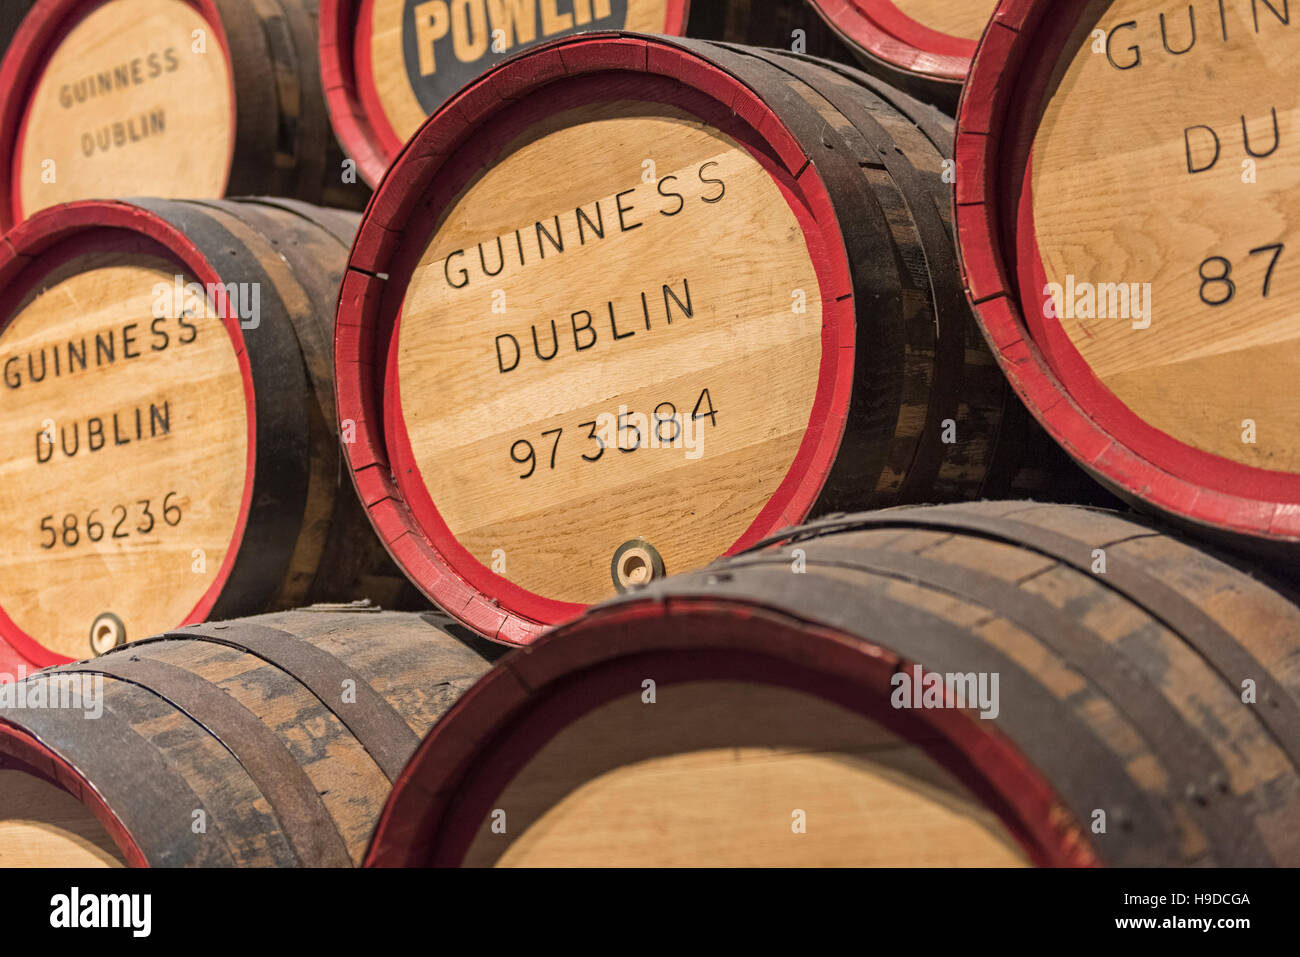 Guinness Storehouse Beer barrels Dublin Ireland - Stock Image